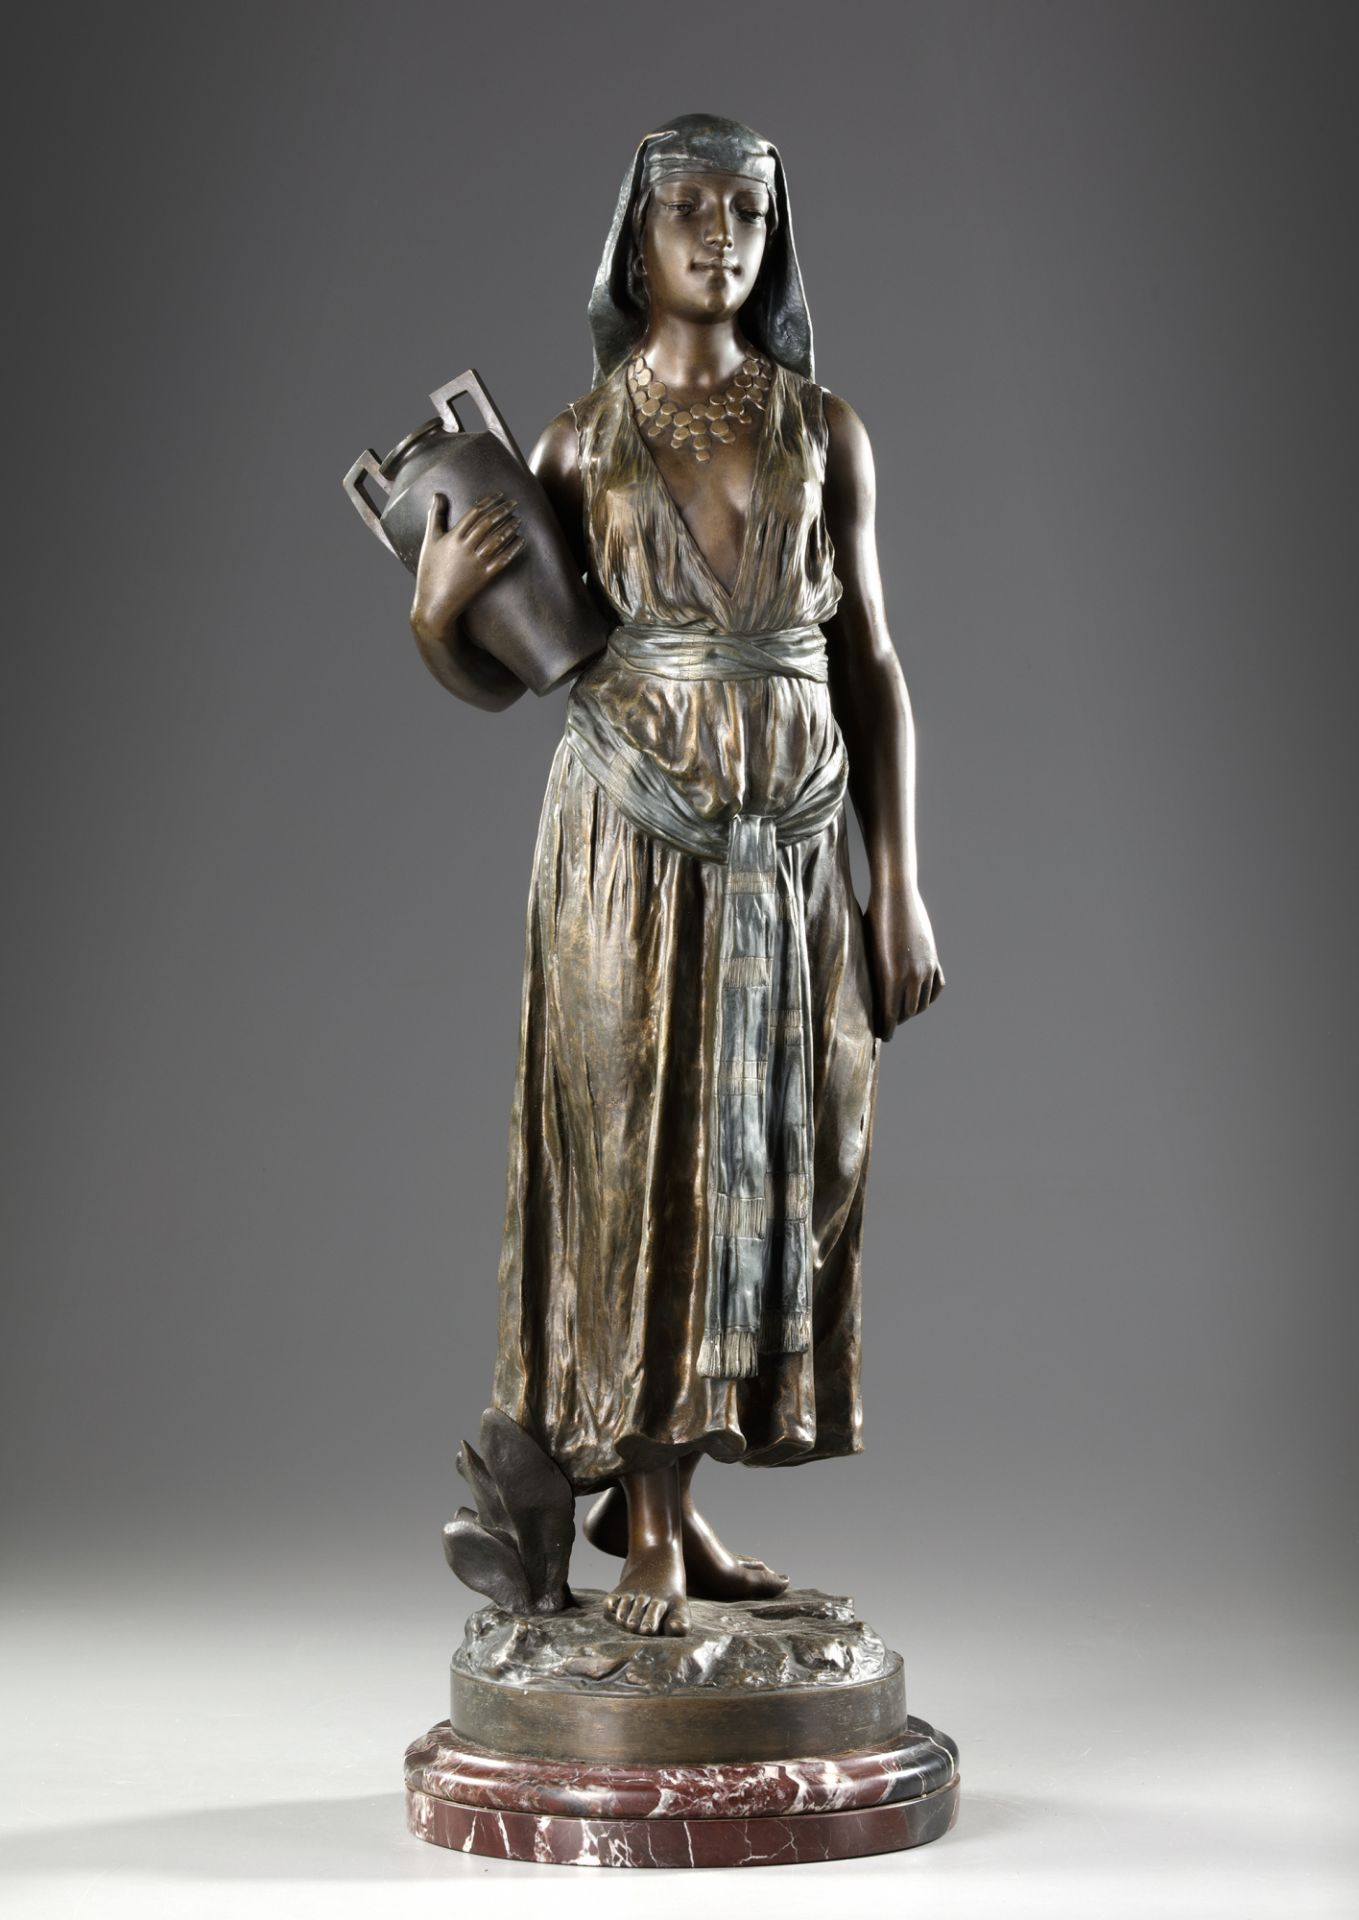 'THE WATER CARRIER', G. THILMANY, 20TH CENTURY